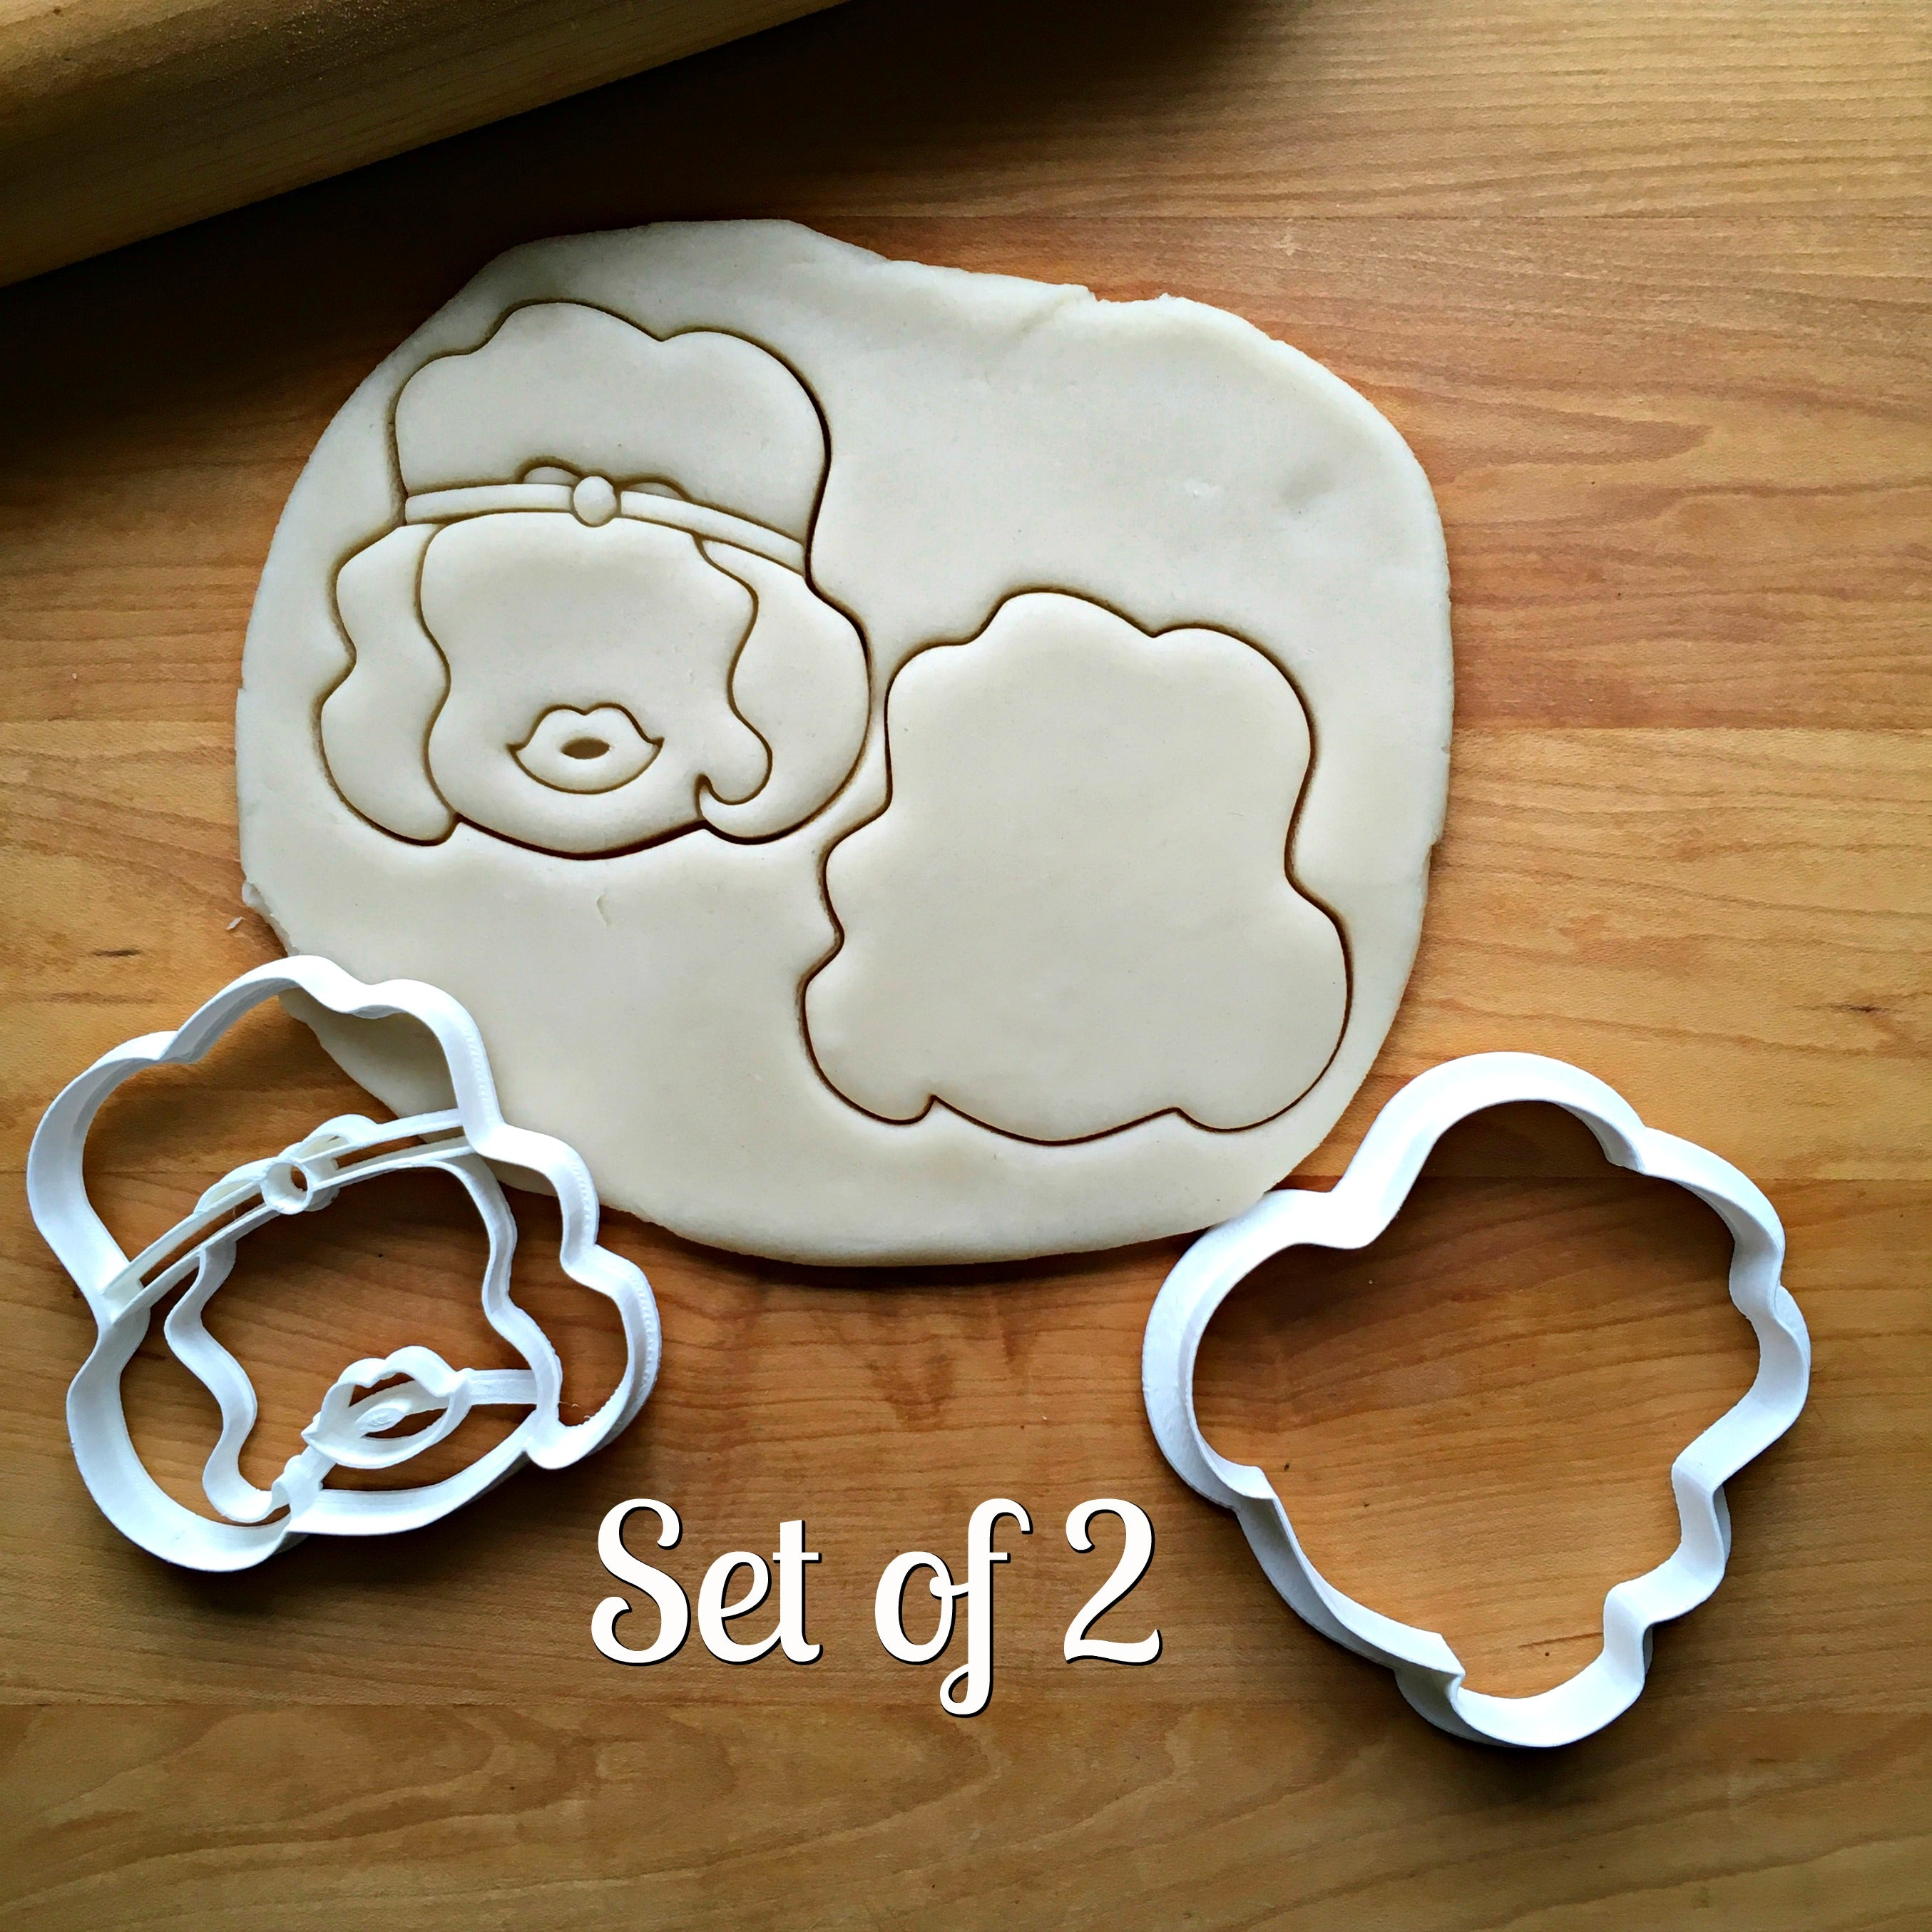 Set of 2 Flapper Girl Cookie Cutters/Dishwasher Safe